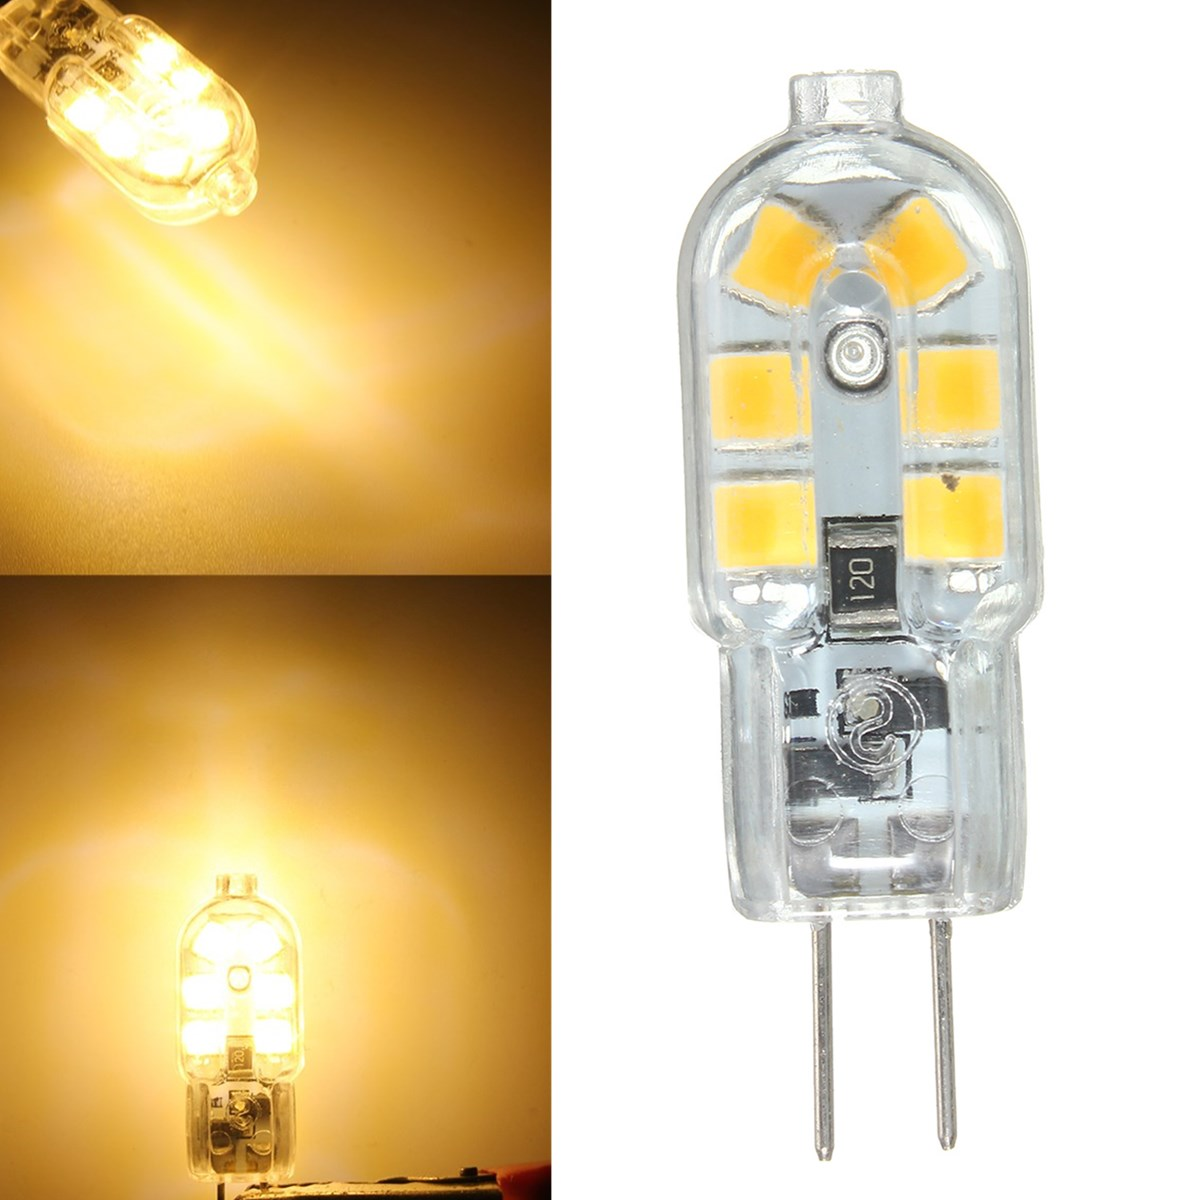 6PCS DC12V G4 2W Non-dimmable SMD2835 Warm White Transparent LED Light Bulb for Indoor Home Decor